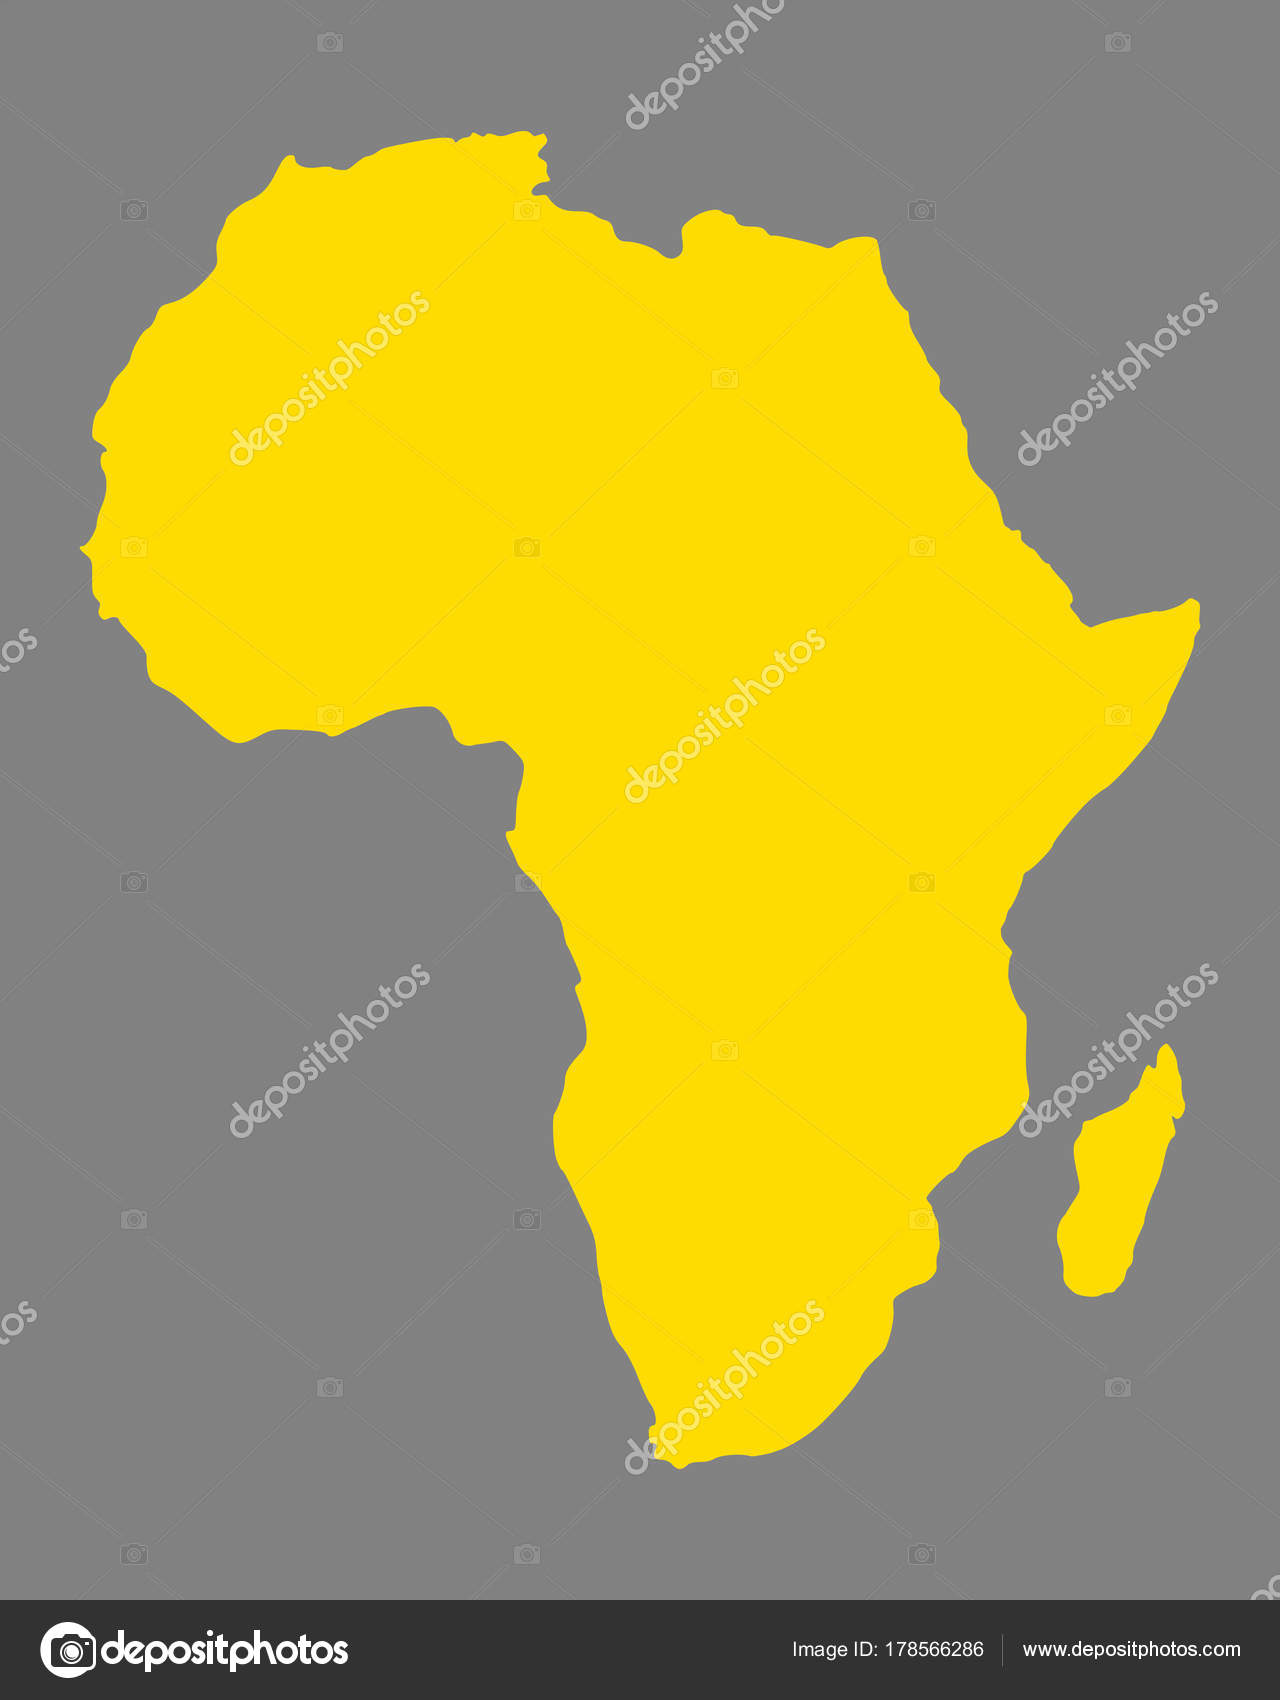 Accurate Map Of Africa.Accurate Map Of Africa Stock Vector C Rbiedermann 178566286